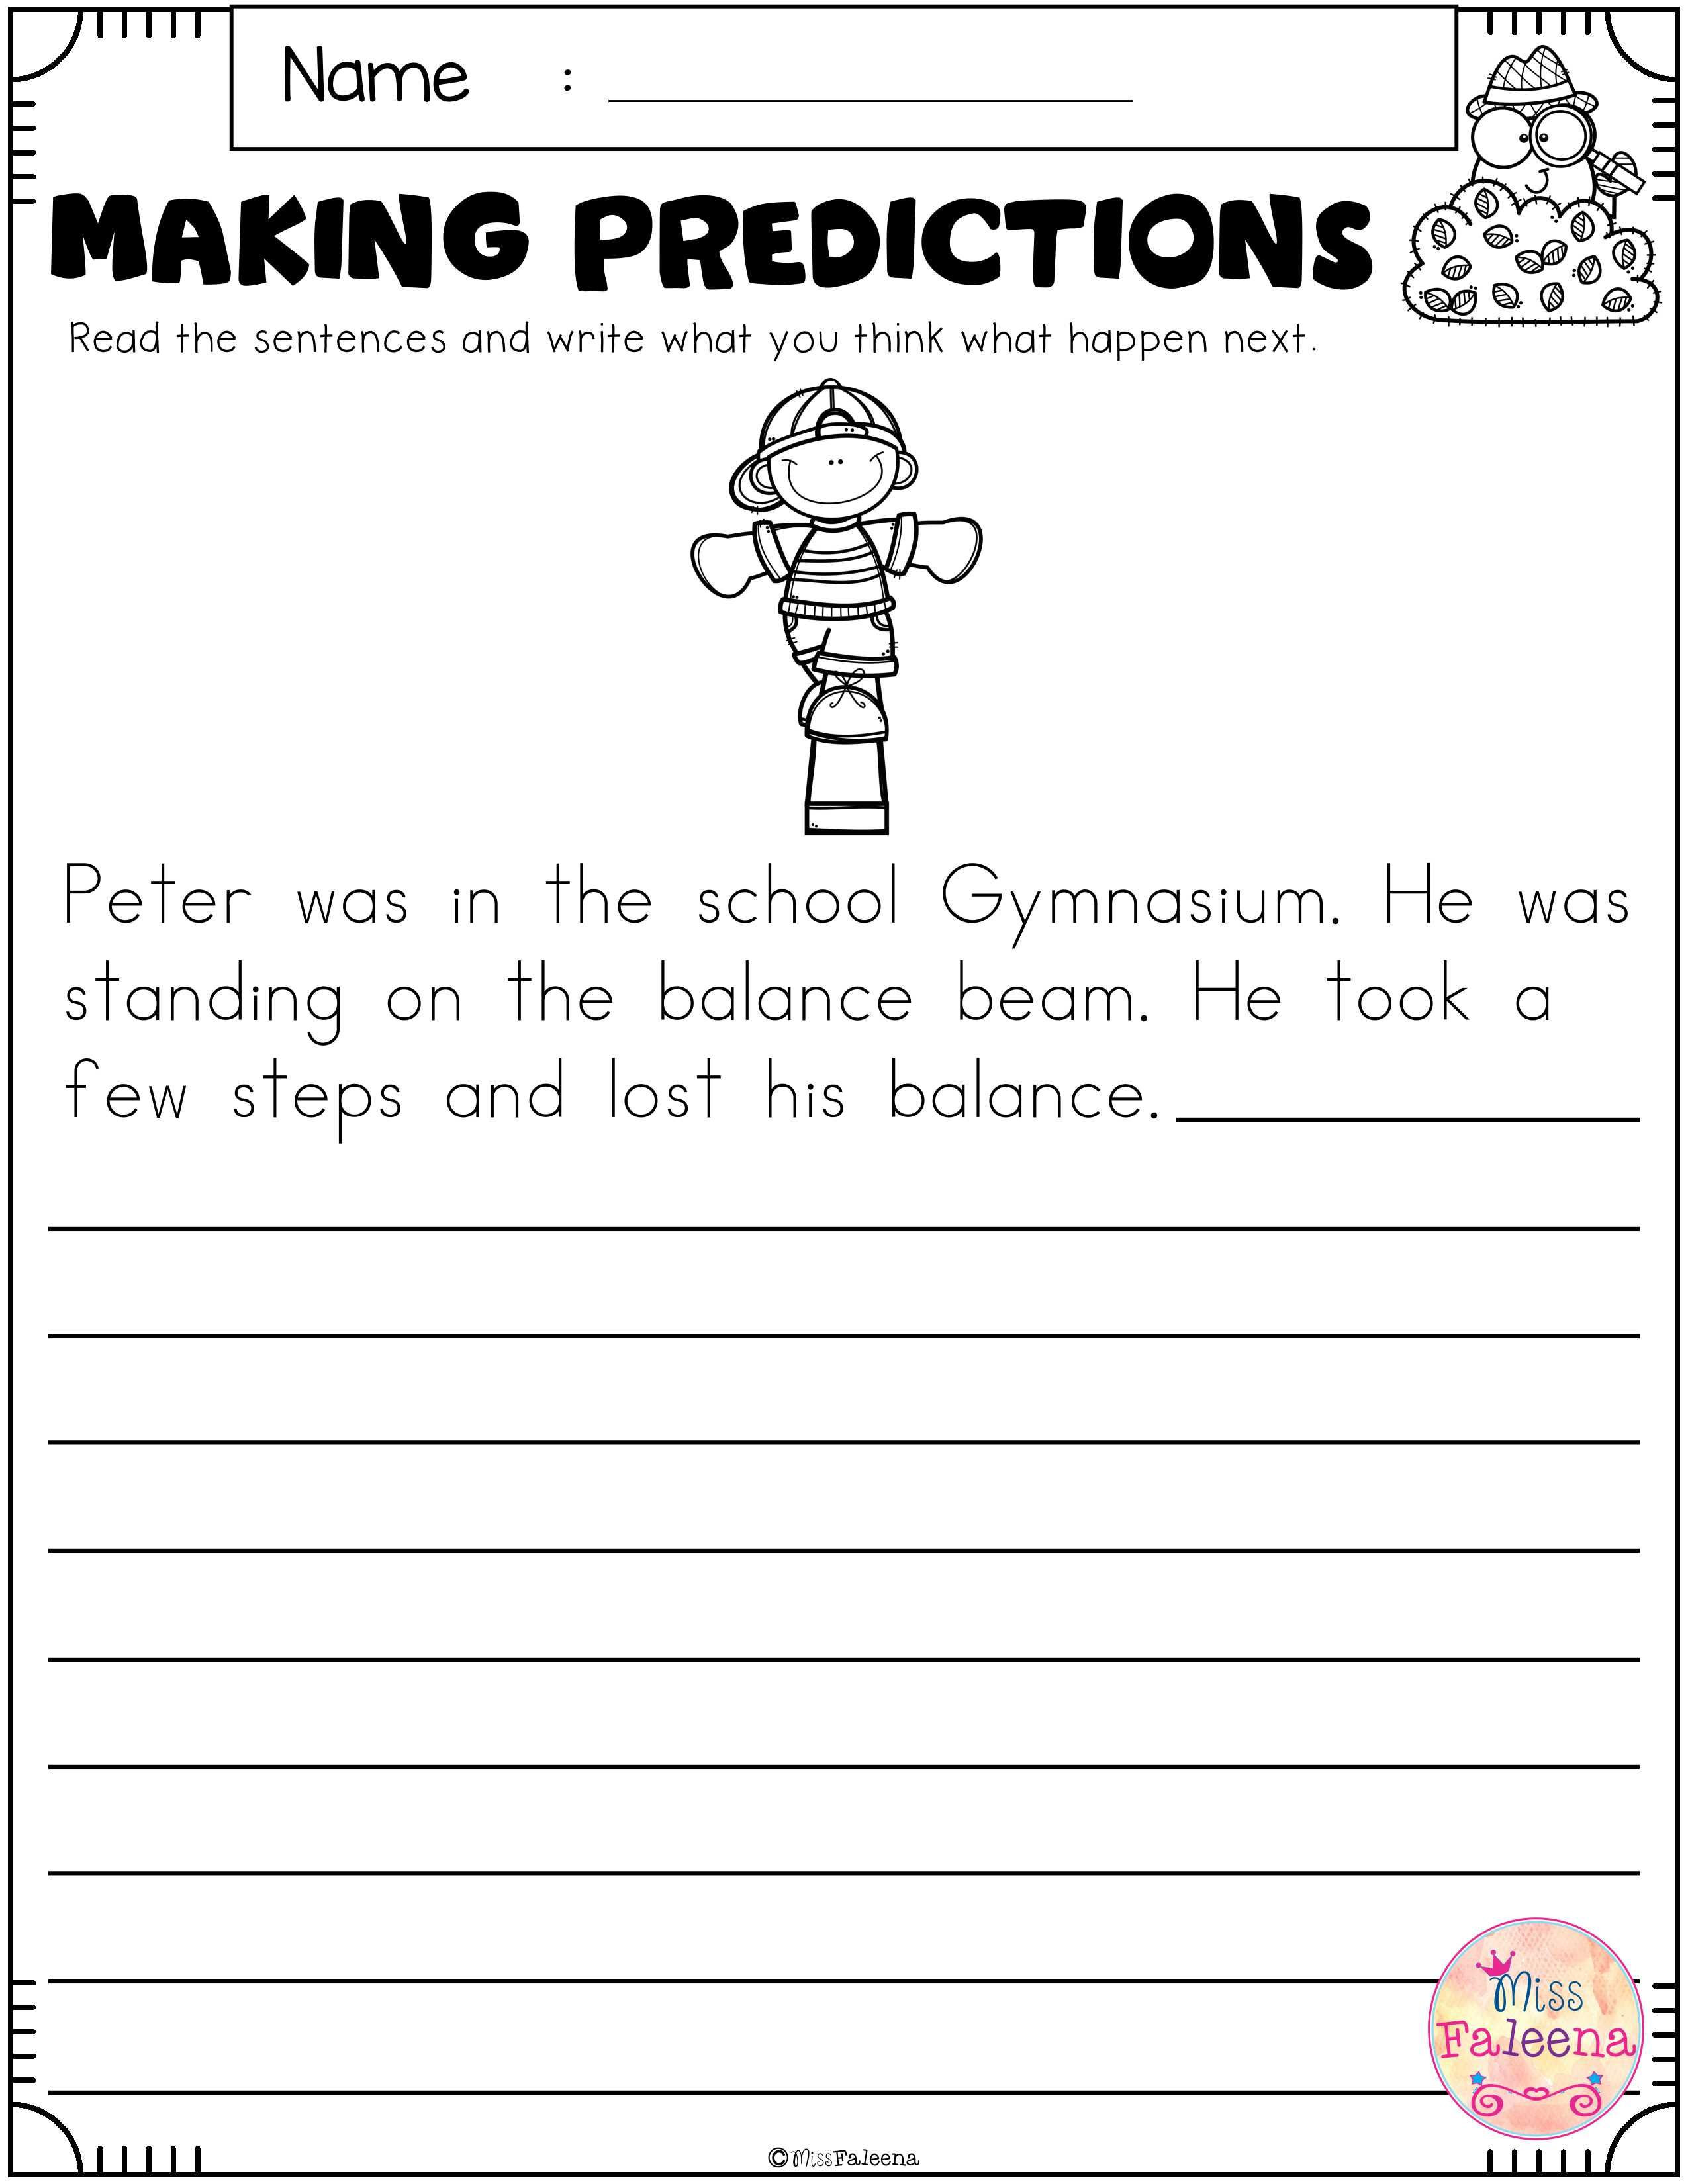 Prediction Worksheets for 3rd Grade Free Making Predictions